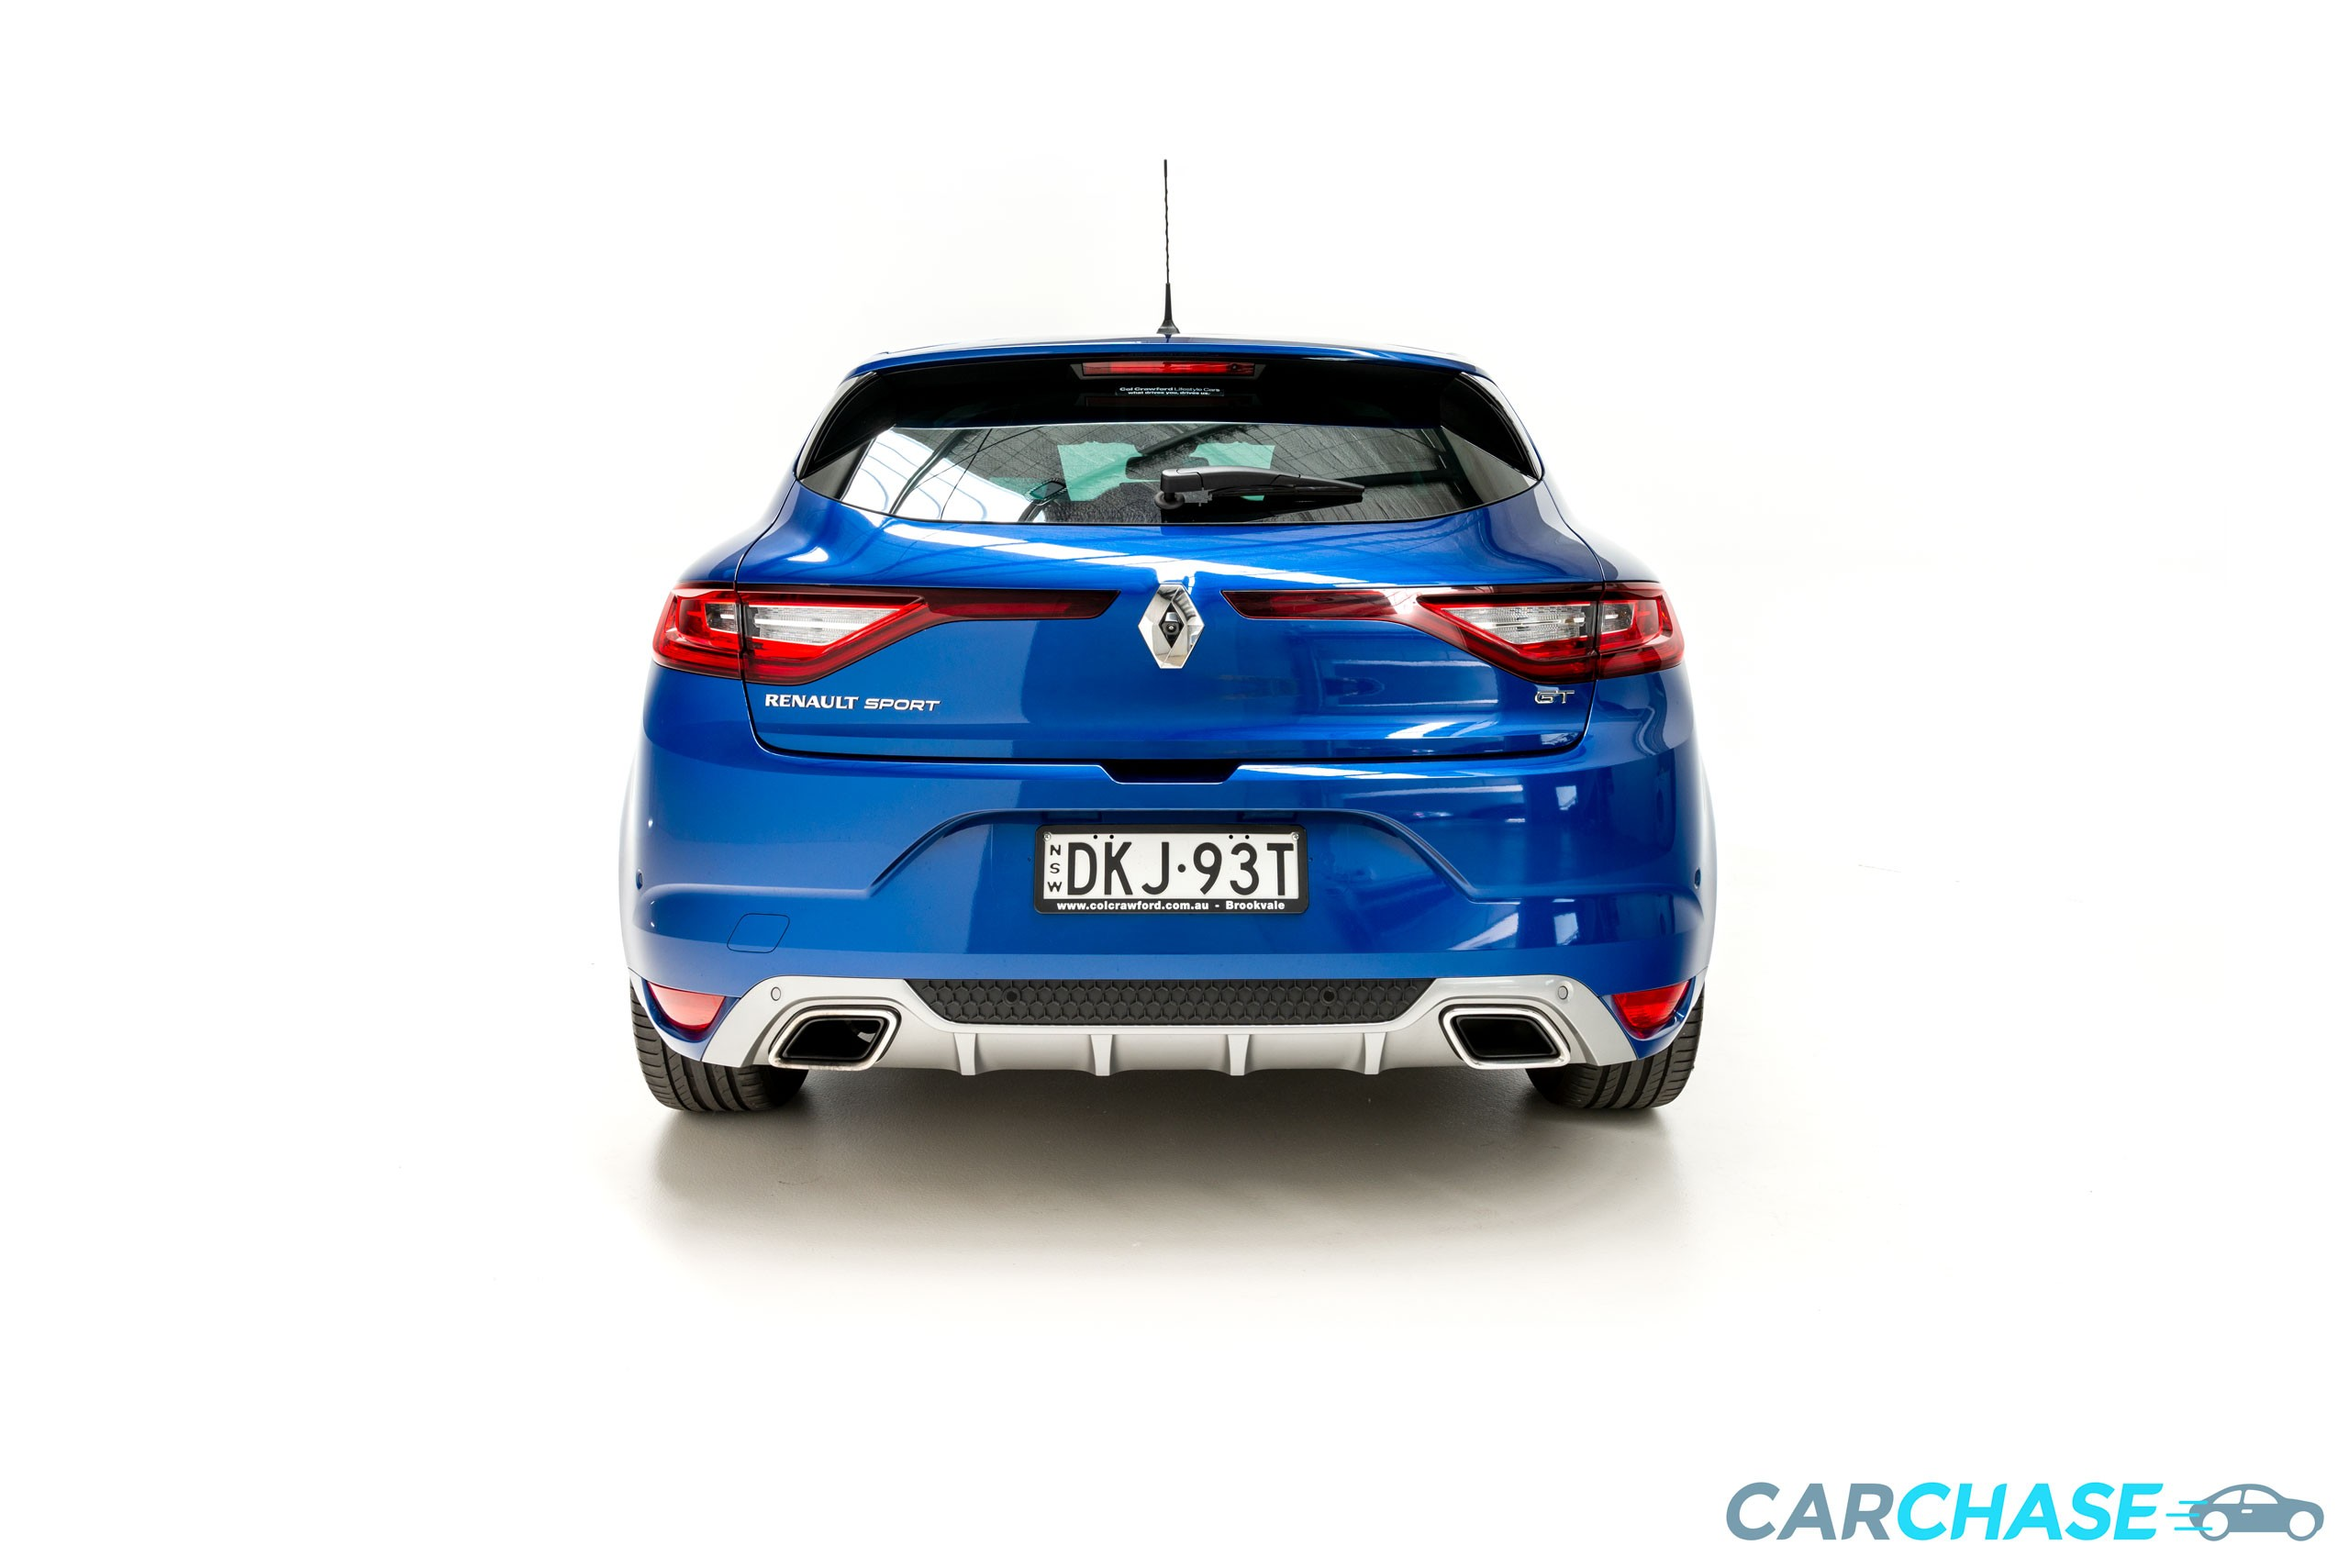 Image of rear profile of 2016 Renault Megane GT